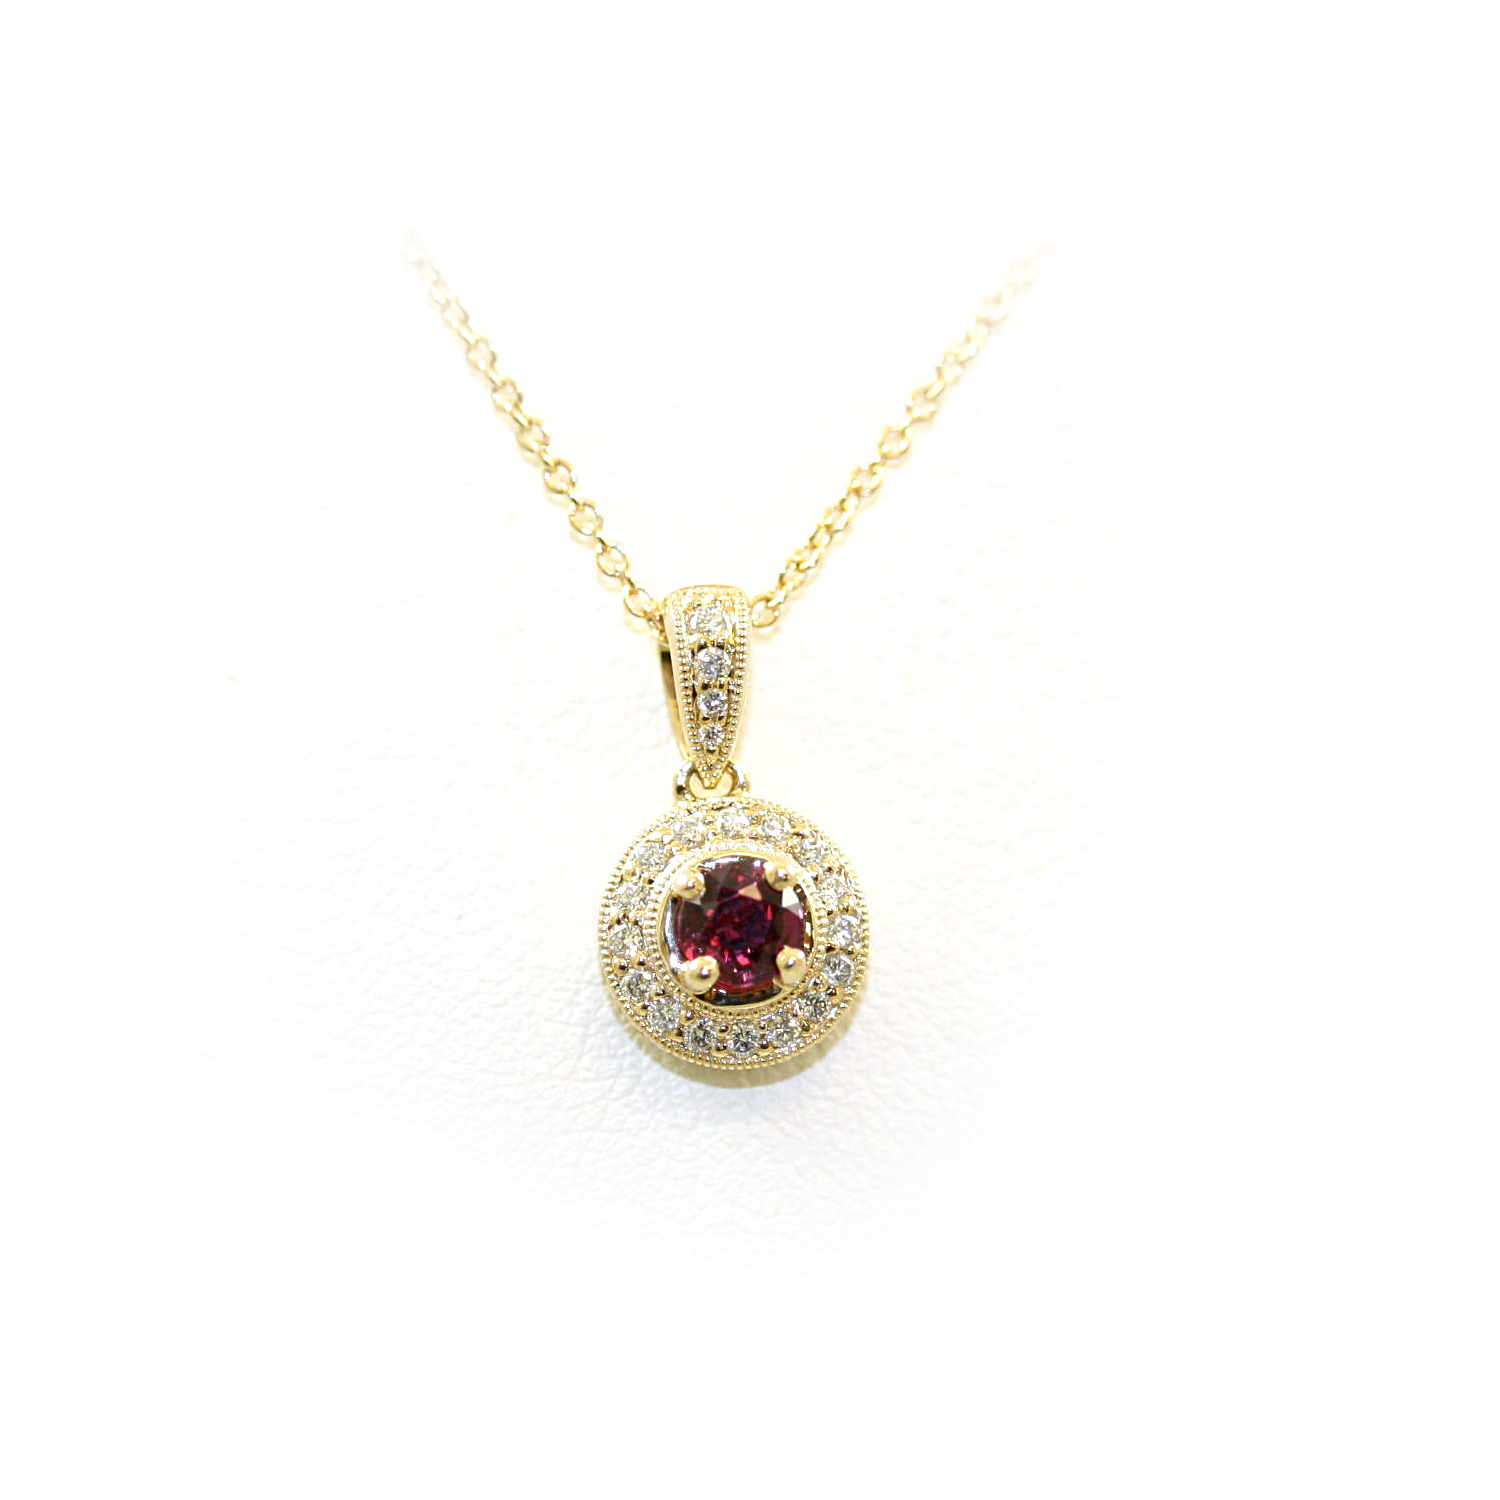 14 Karat Yellow Gold Ruby and Diamond Pendant Necklace